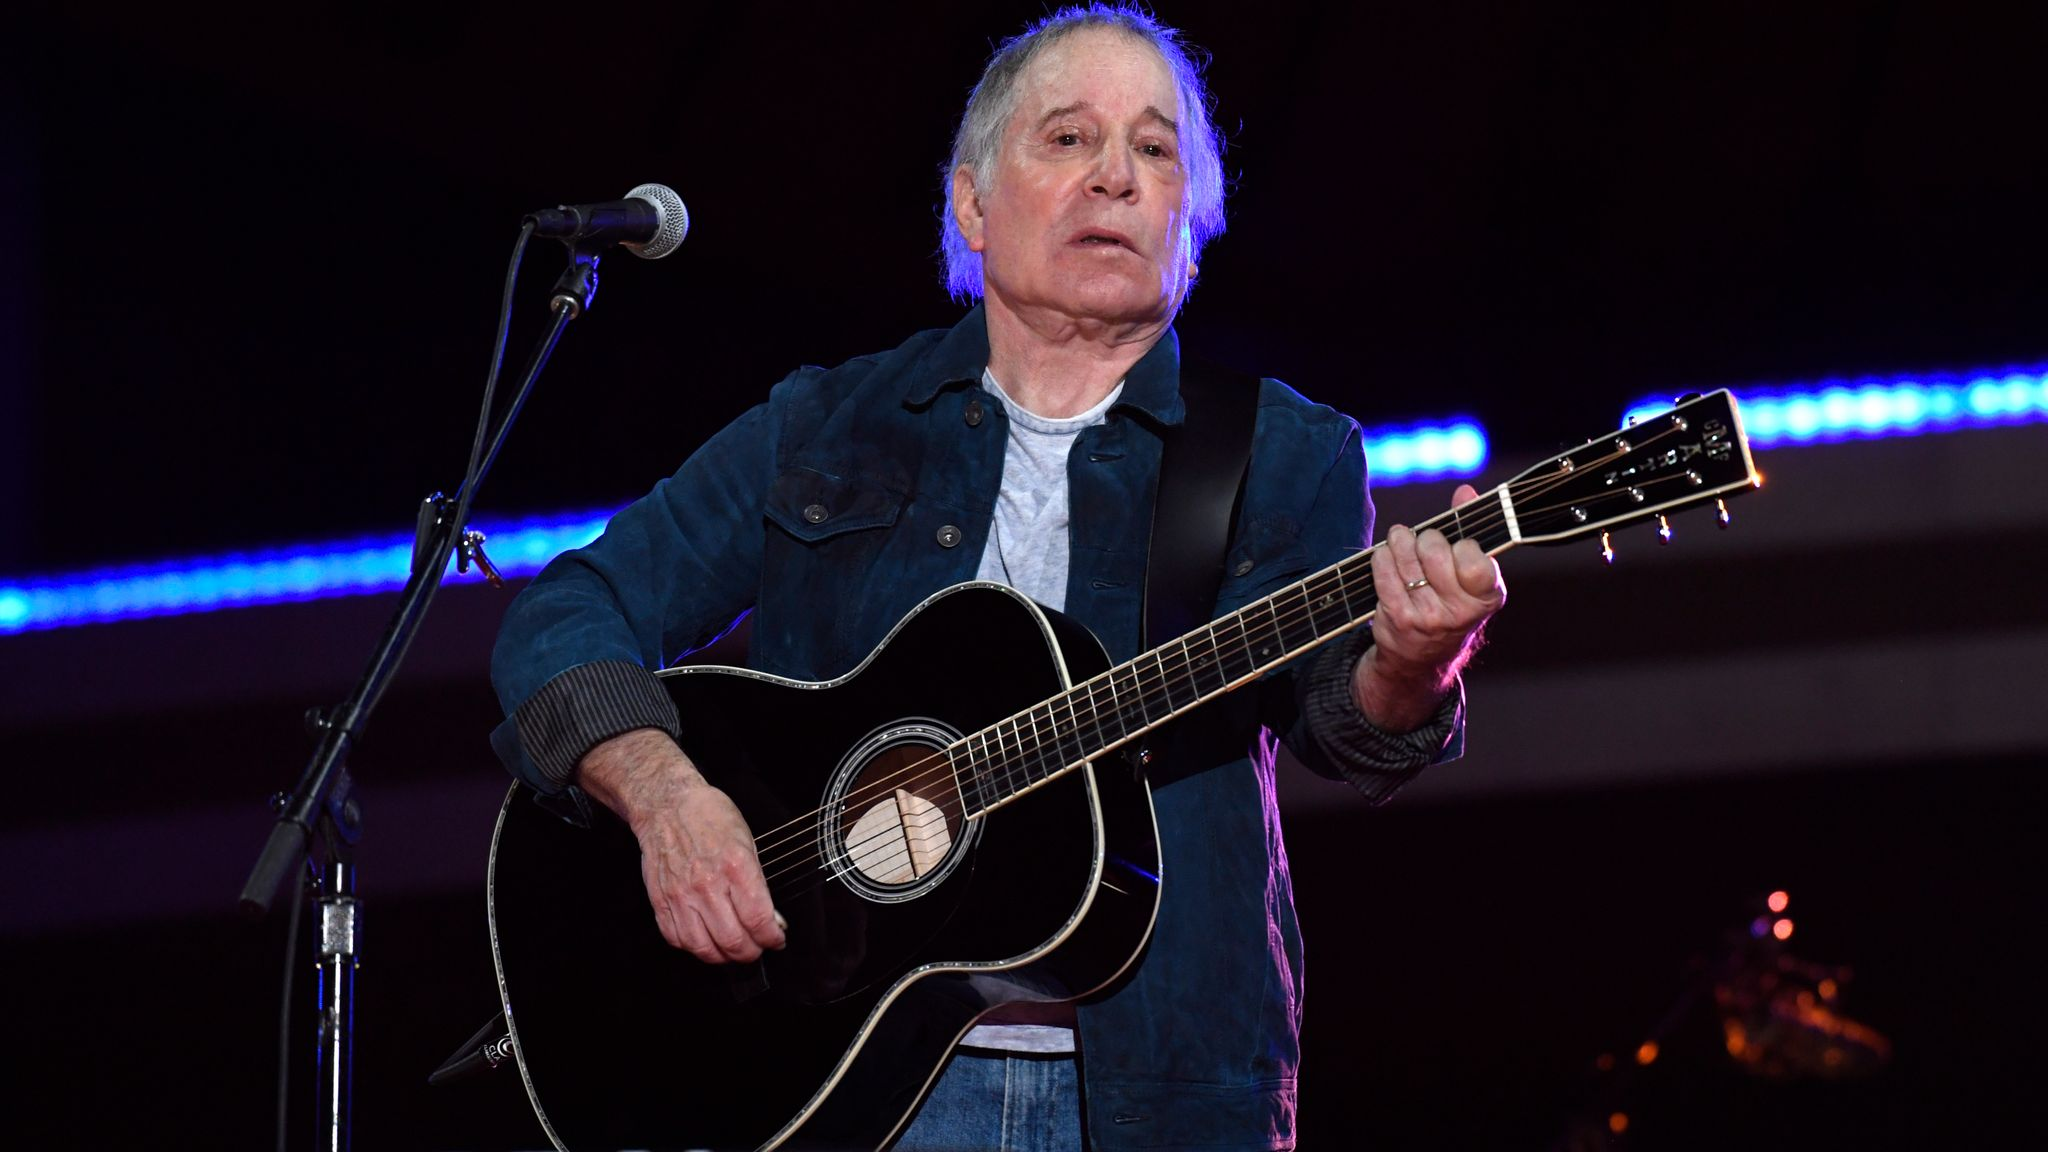 Paul Simon performed in New York for the global music event on Saturday night